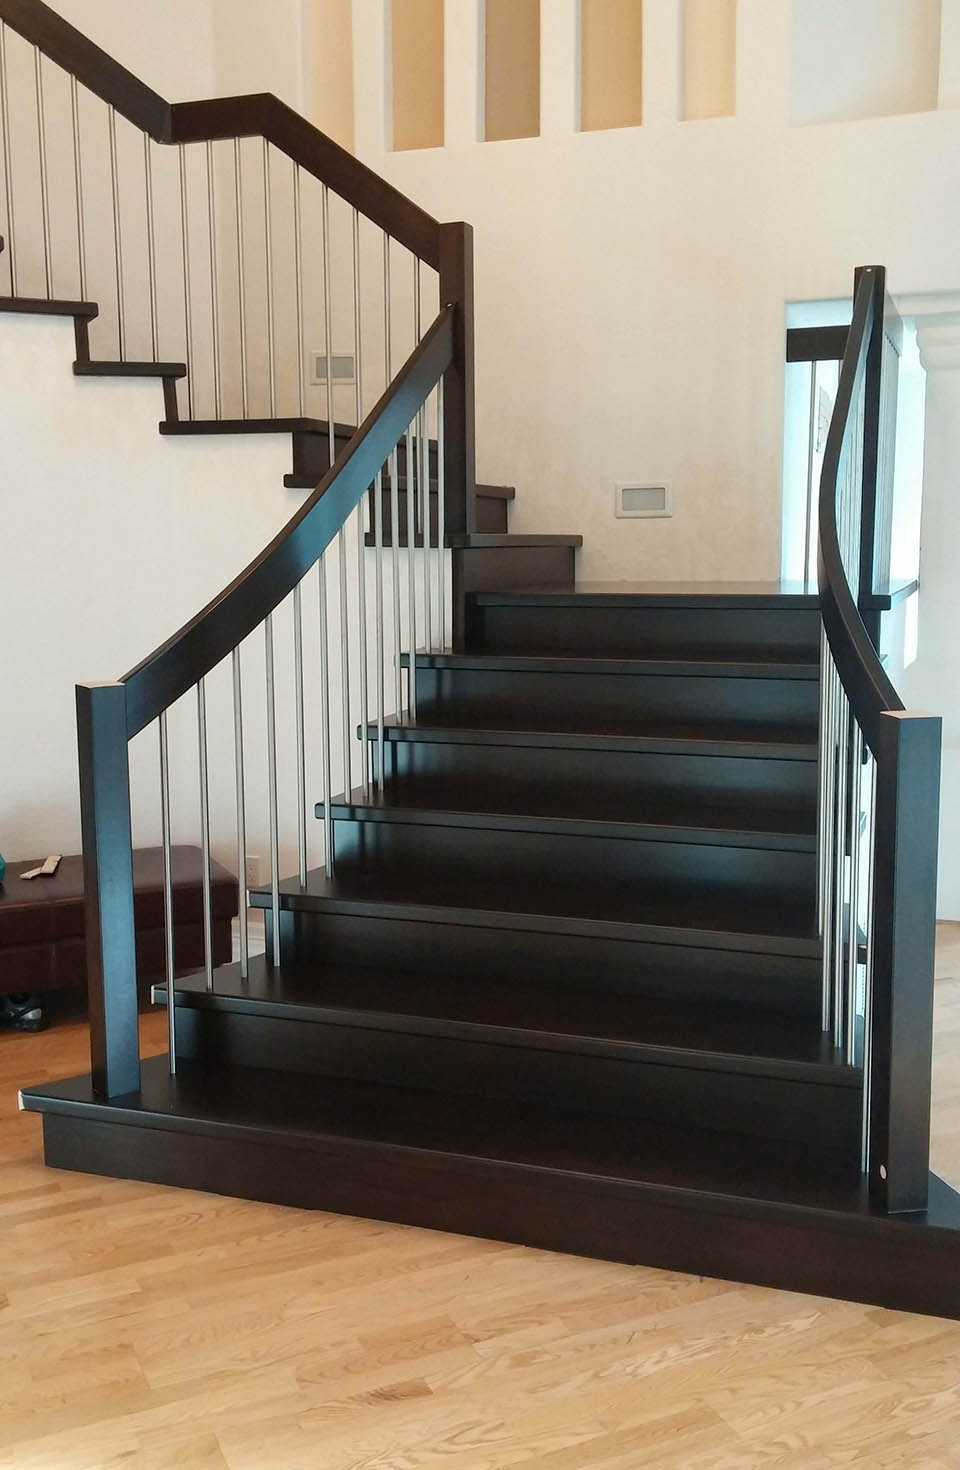 Modern Staircase Artistic Stairs Canada | Modern Stainless Steel Staircase Railing | Modular Steel | Hand | Crystal Handrail | Contemporary | Exterior